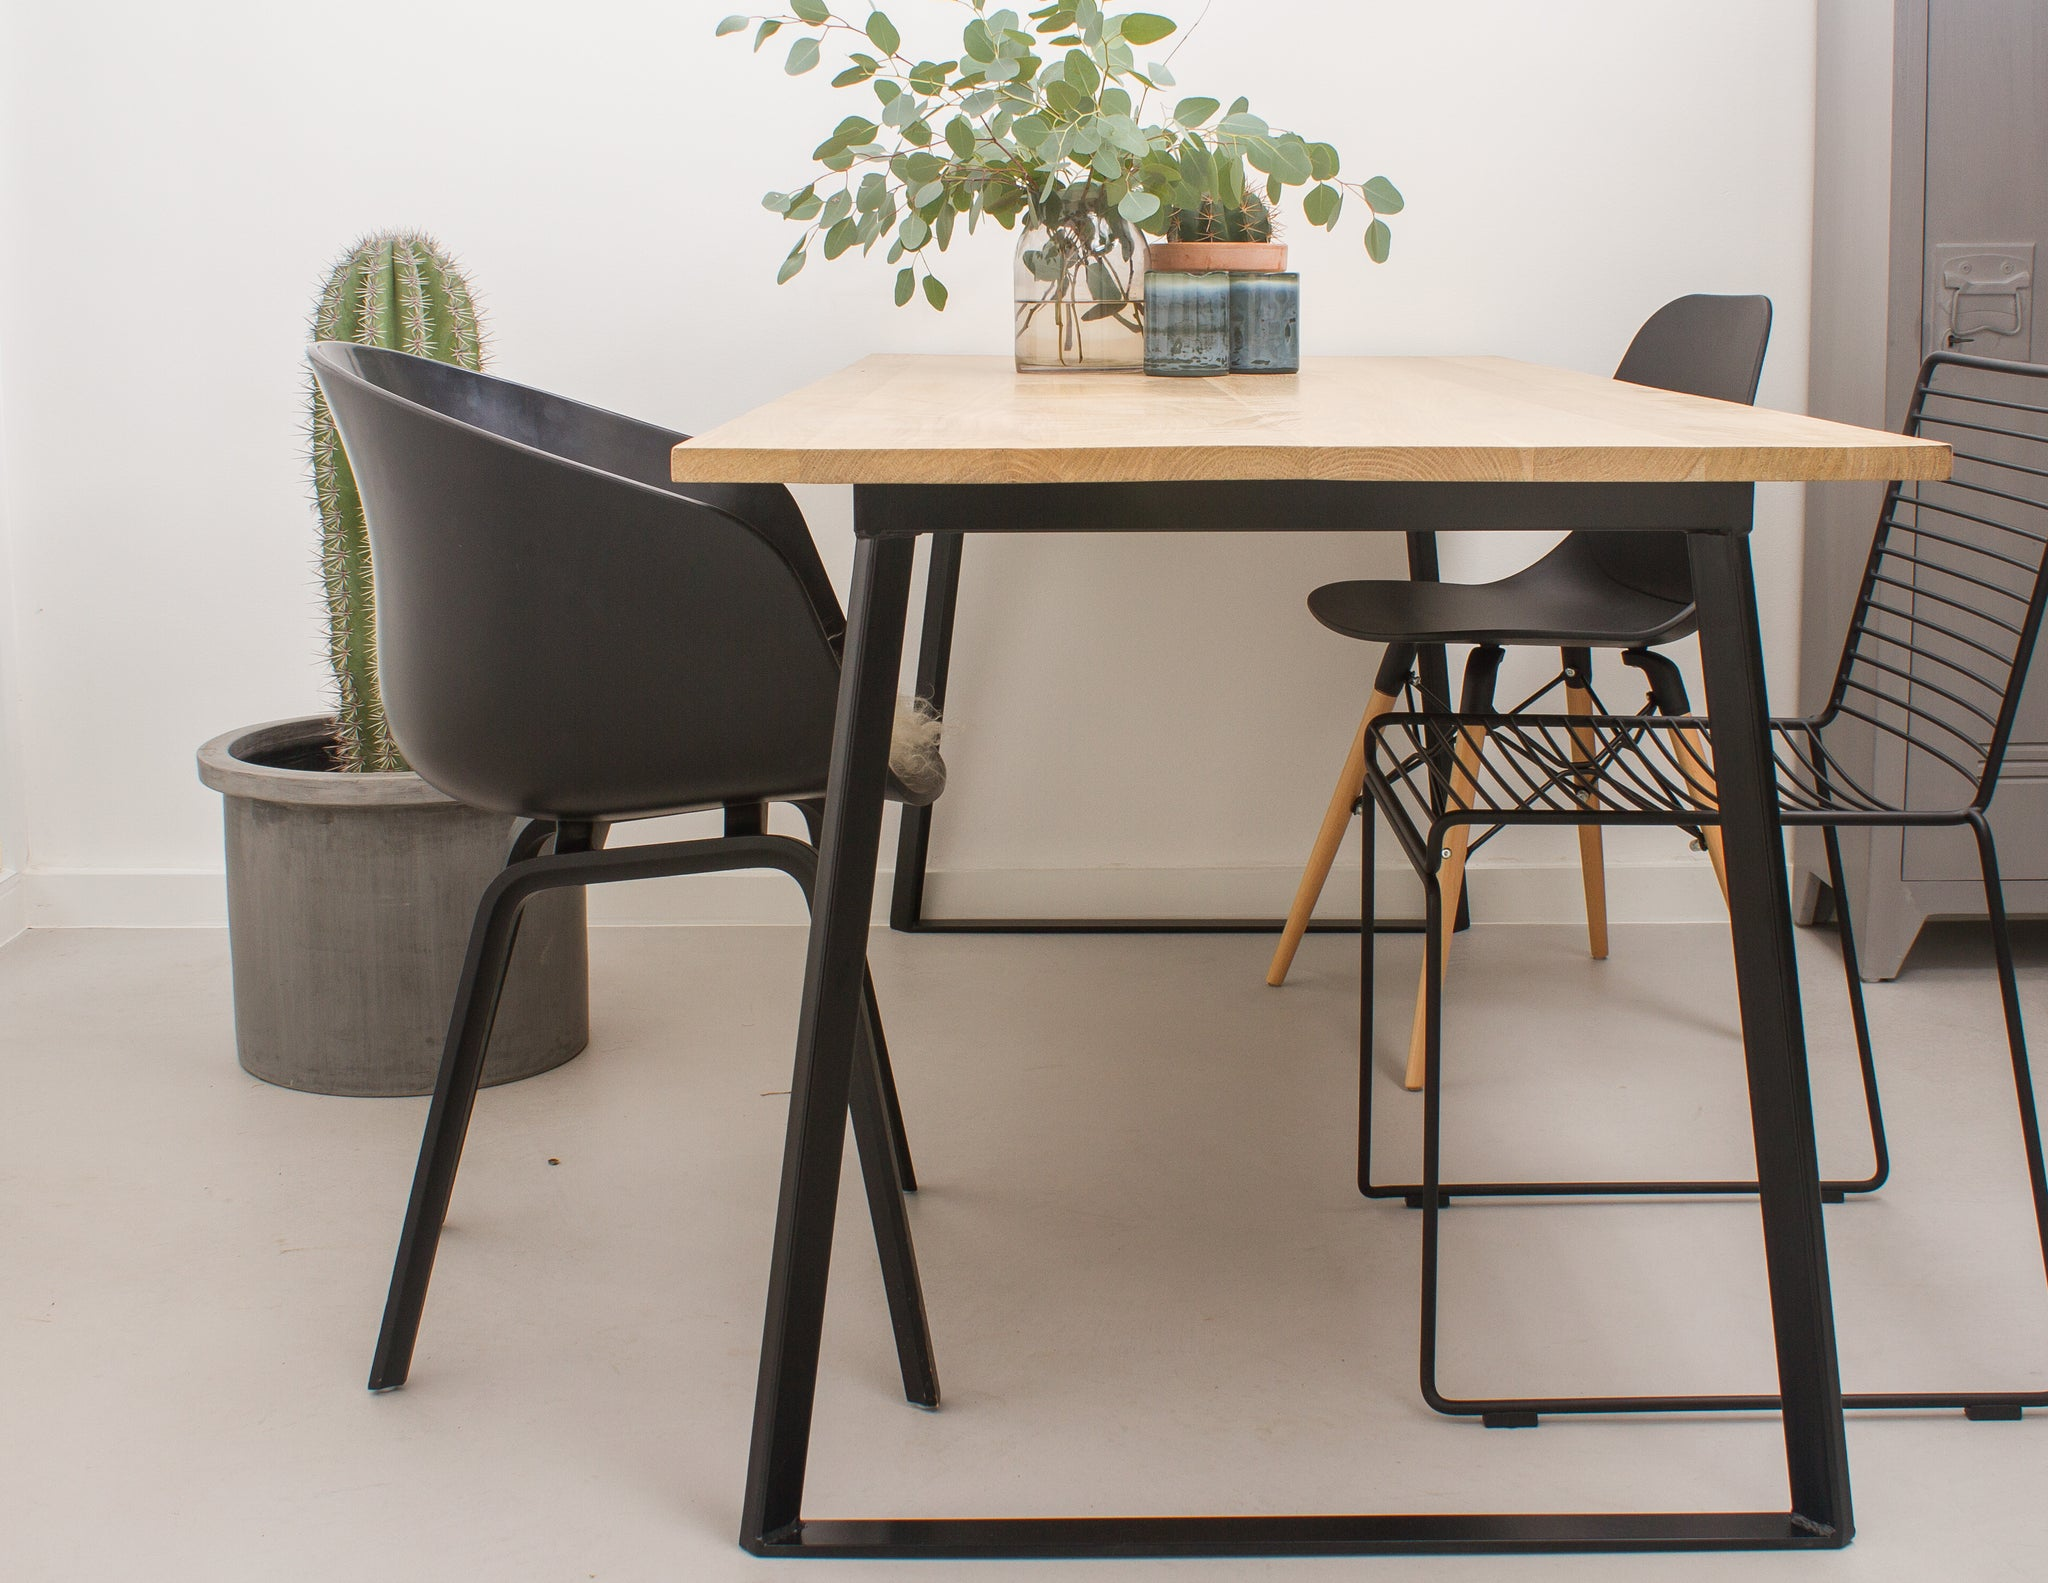 Table Ekberg